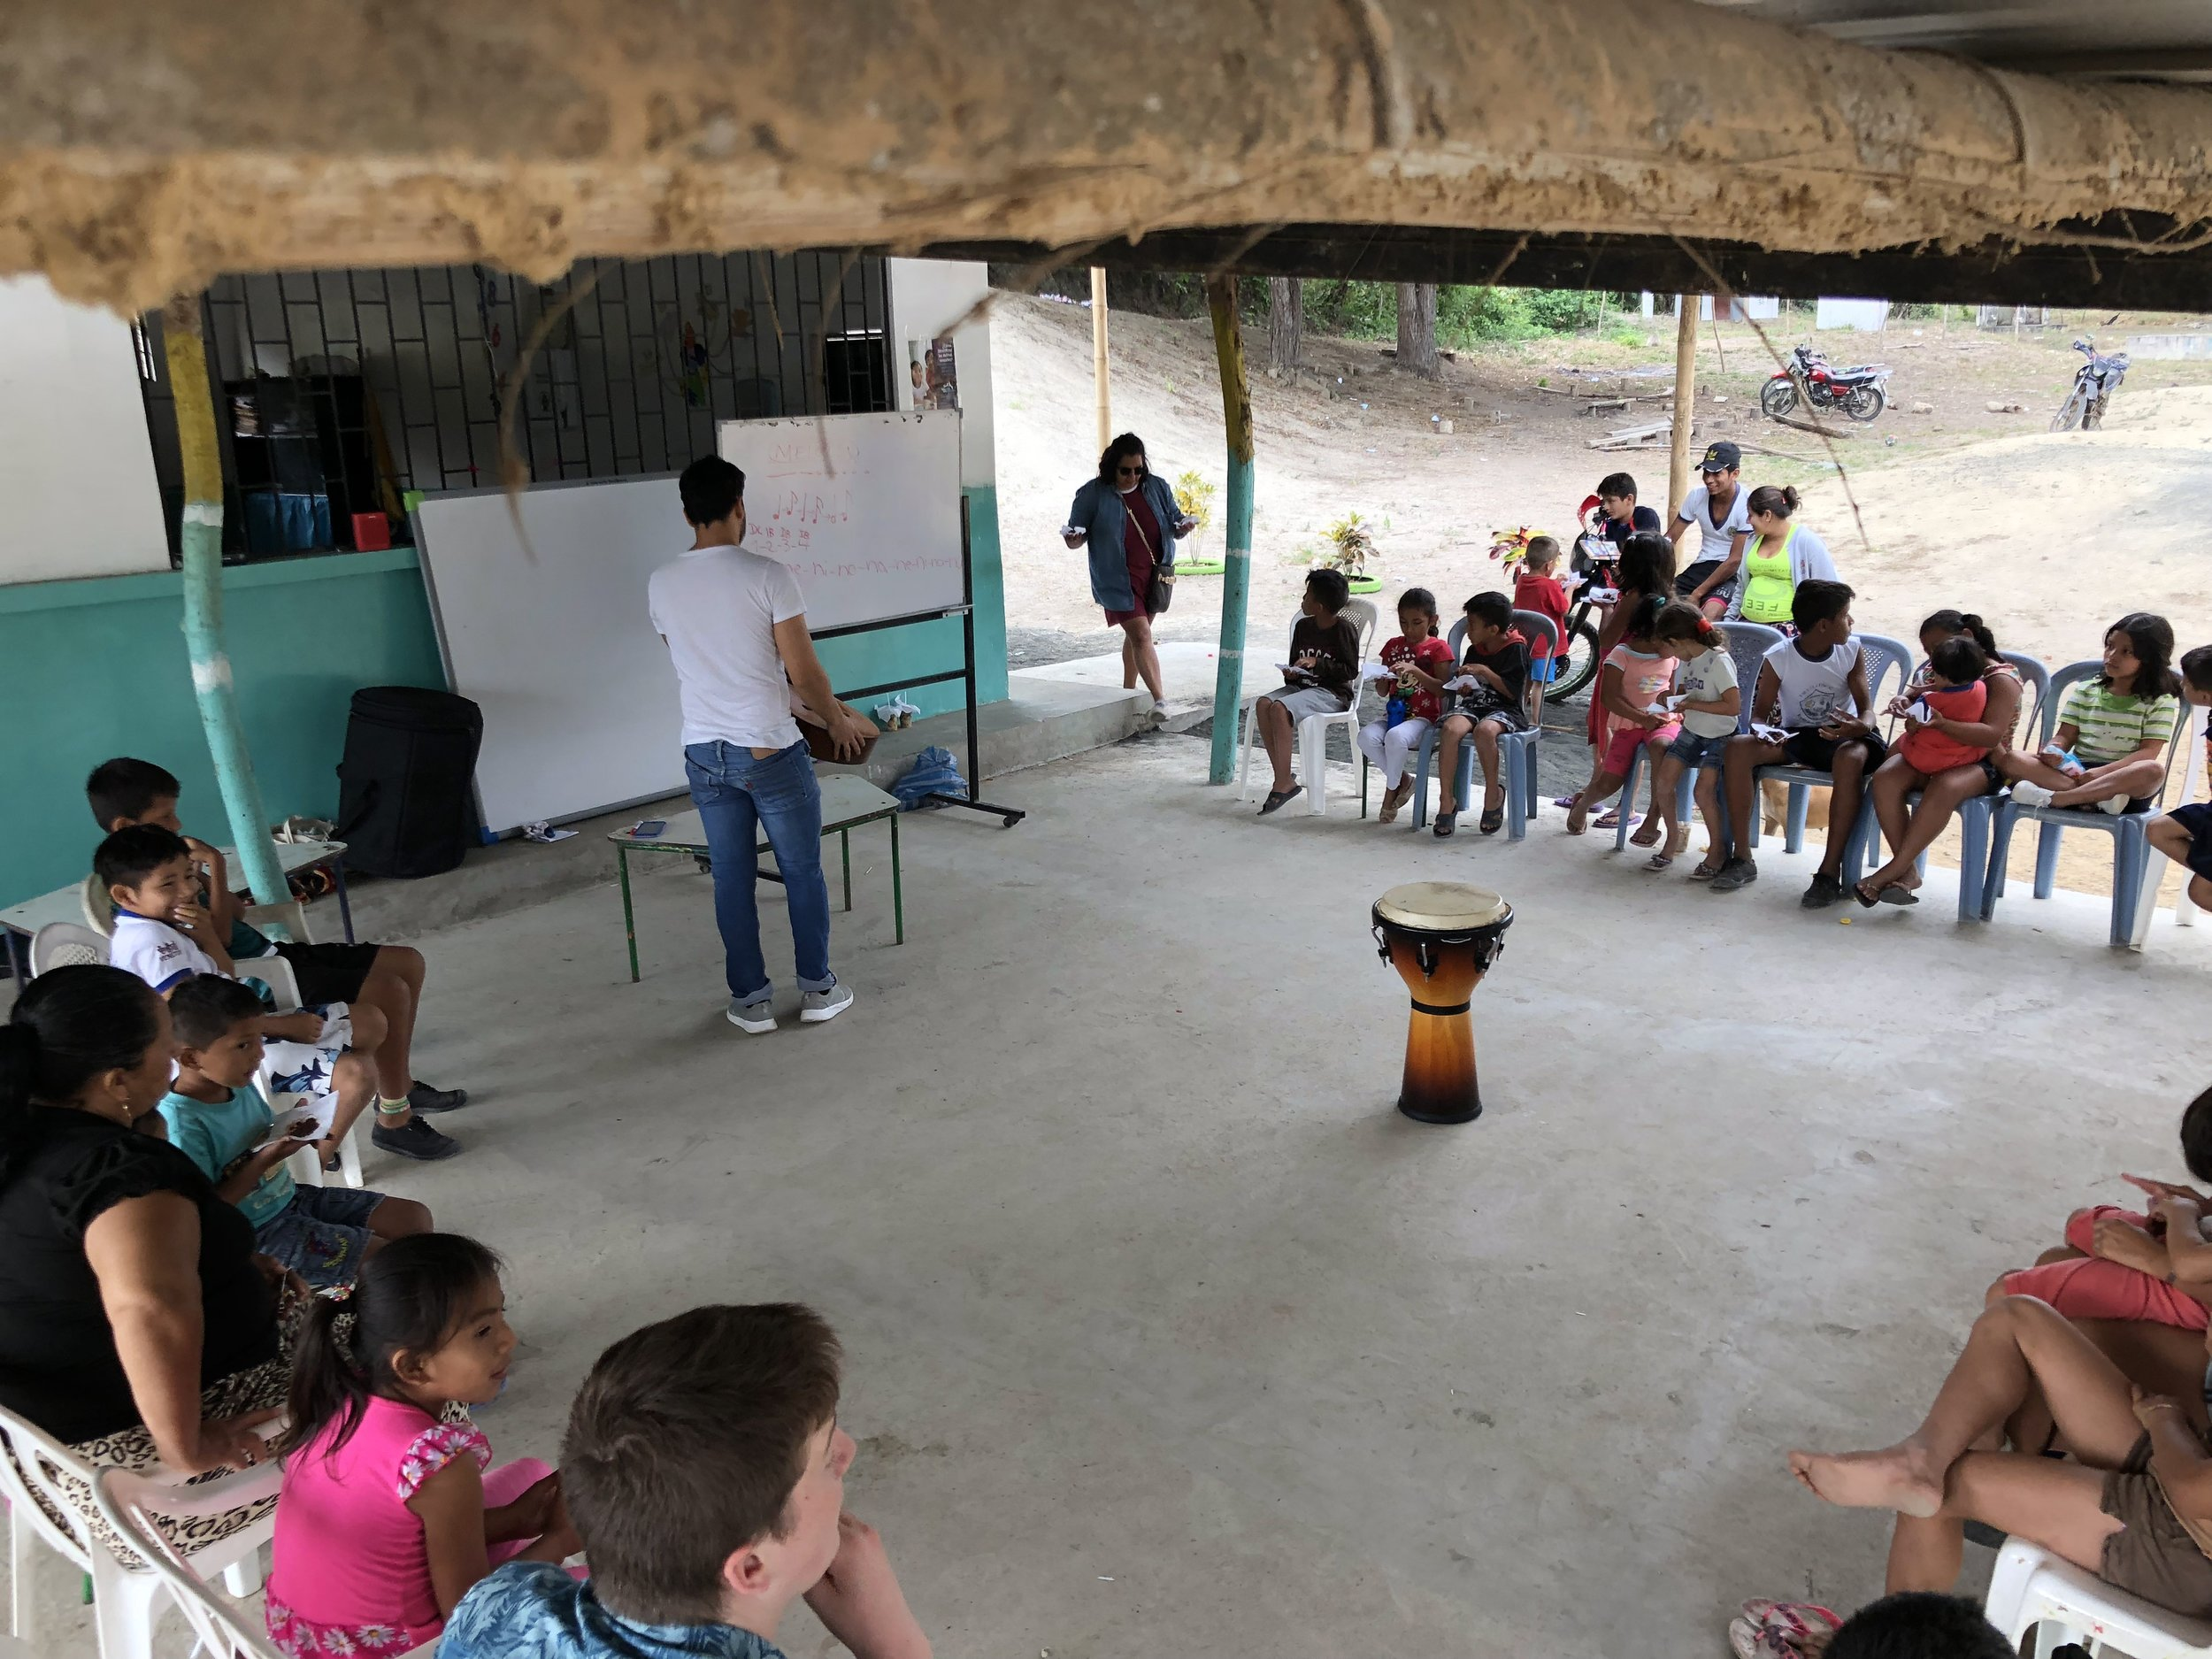 Music Program - $10 will help provide transportation to local Ecuadorian band & non-profit Hope Ecuador to and from the community of El Junco.$25 will provide nutritious snacks for 15-25 children$50 will provide a mini guitar or other instrument for the children.$75 will provide musical software the children can use to practice together 3x a week.$100 will provide a concert for the community of Junco to show off their newly learned skills and develop a sense of confidence performing in front of their peers.